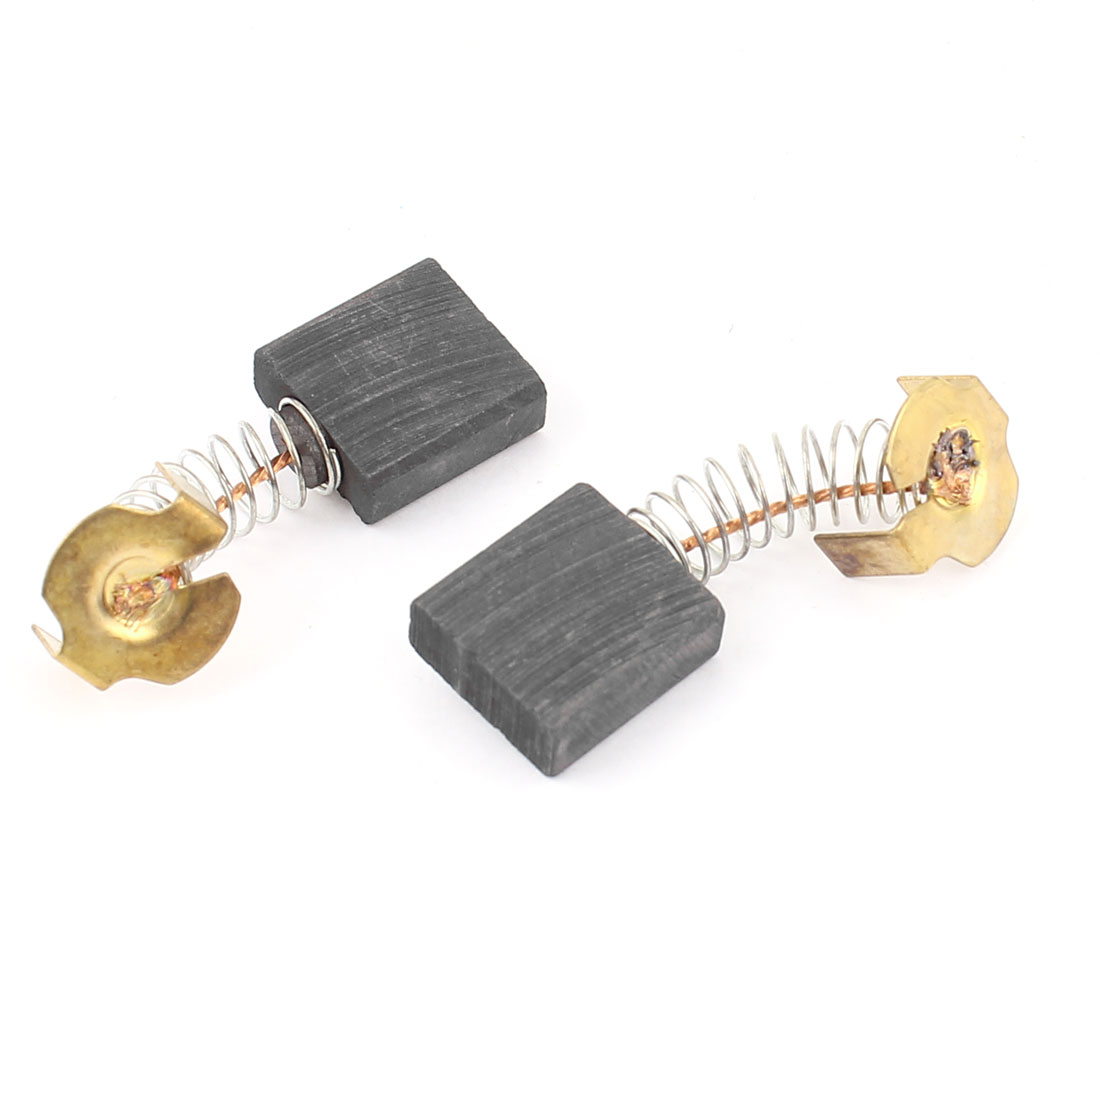 2 Pcs Electric Motor Carbon Brushes Repair Replacement 18mmx17mmx7mm